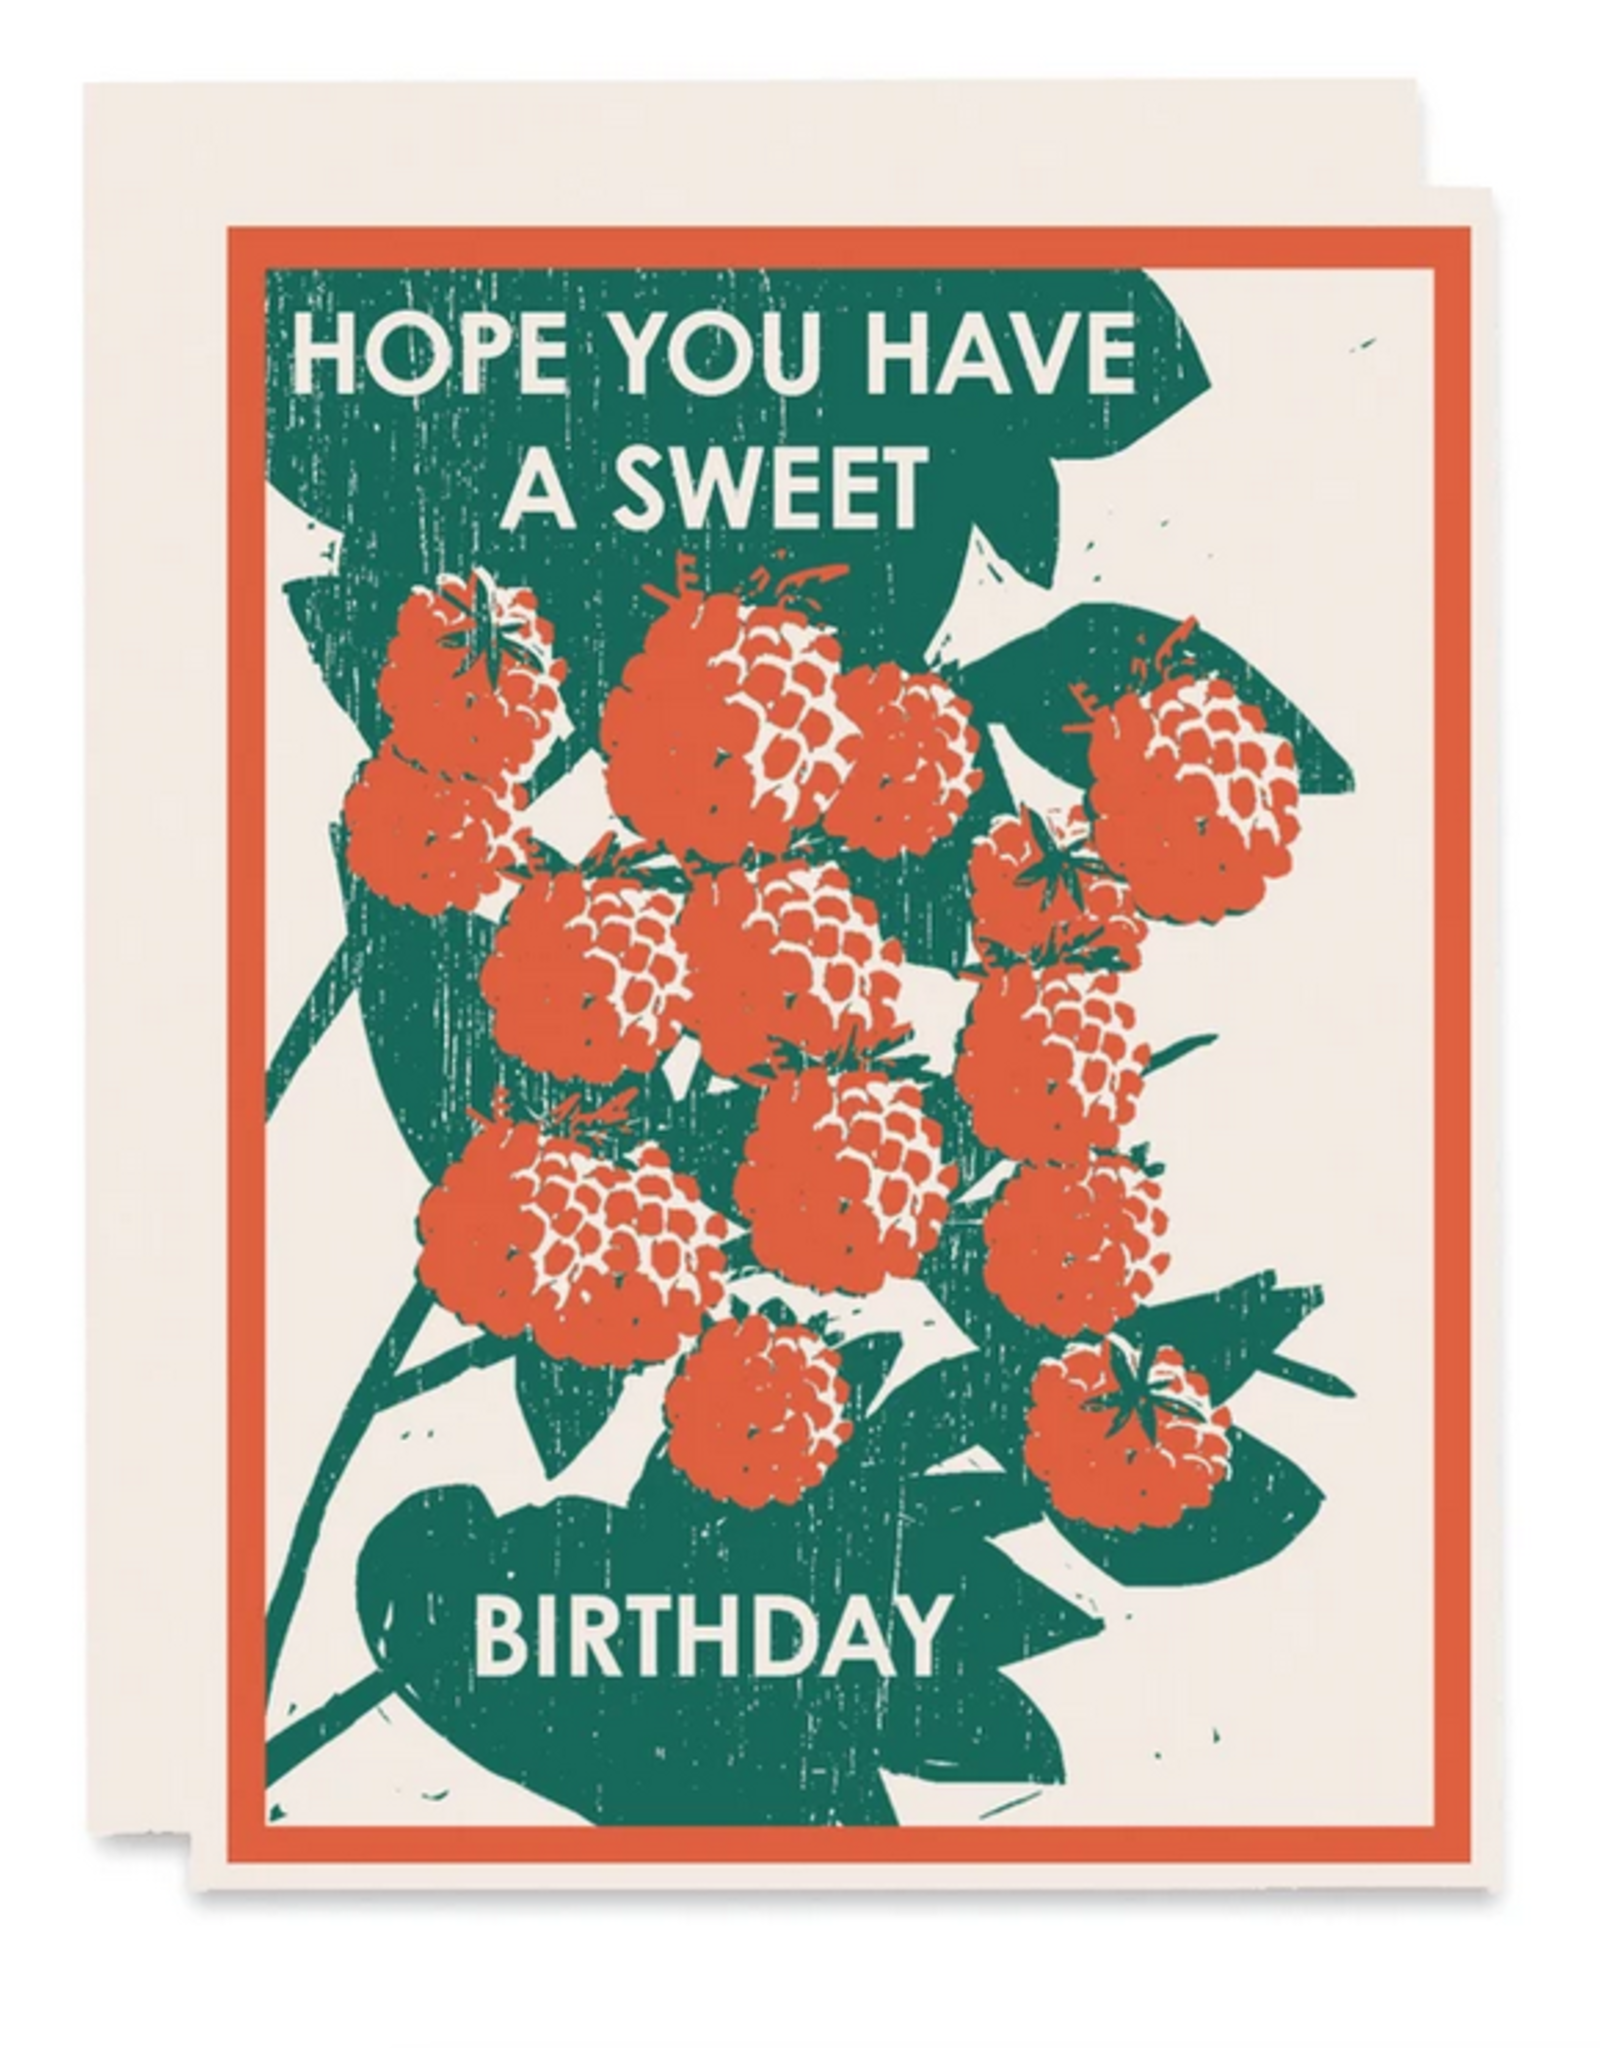 I Hope You Have a Sweet Birthday Greeting Card